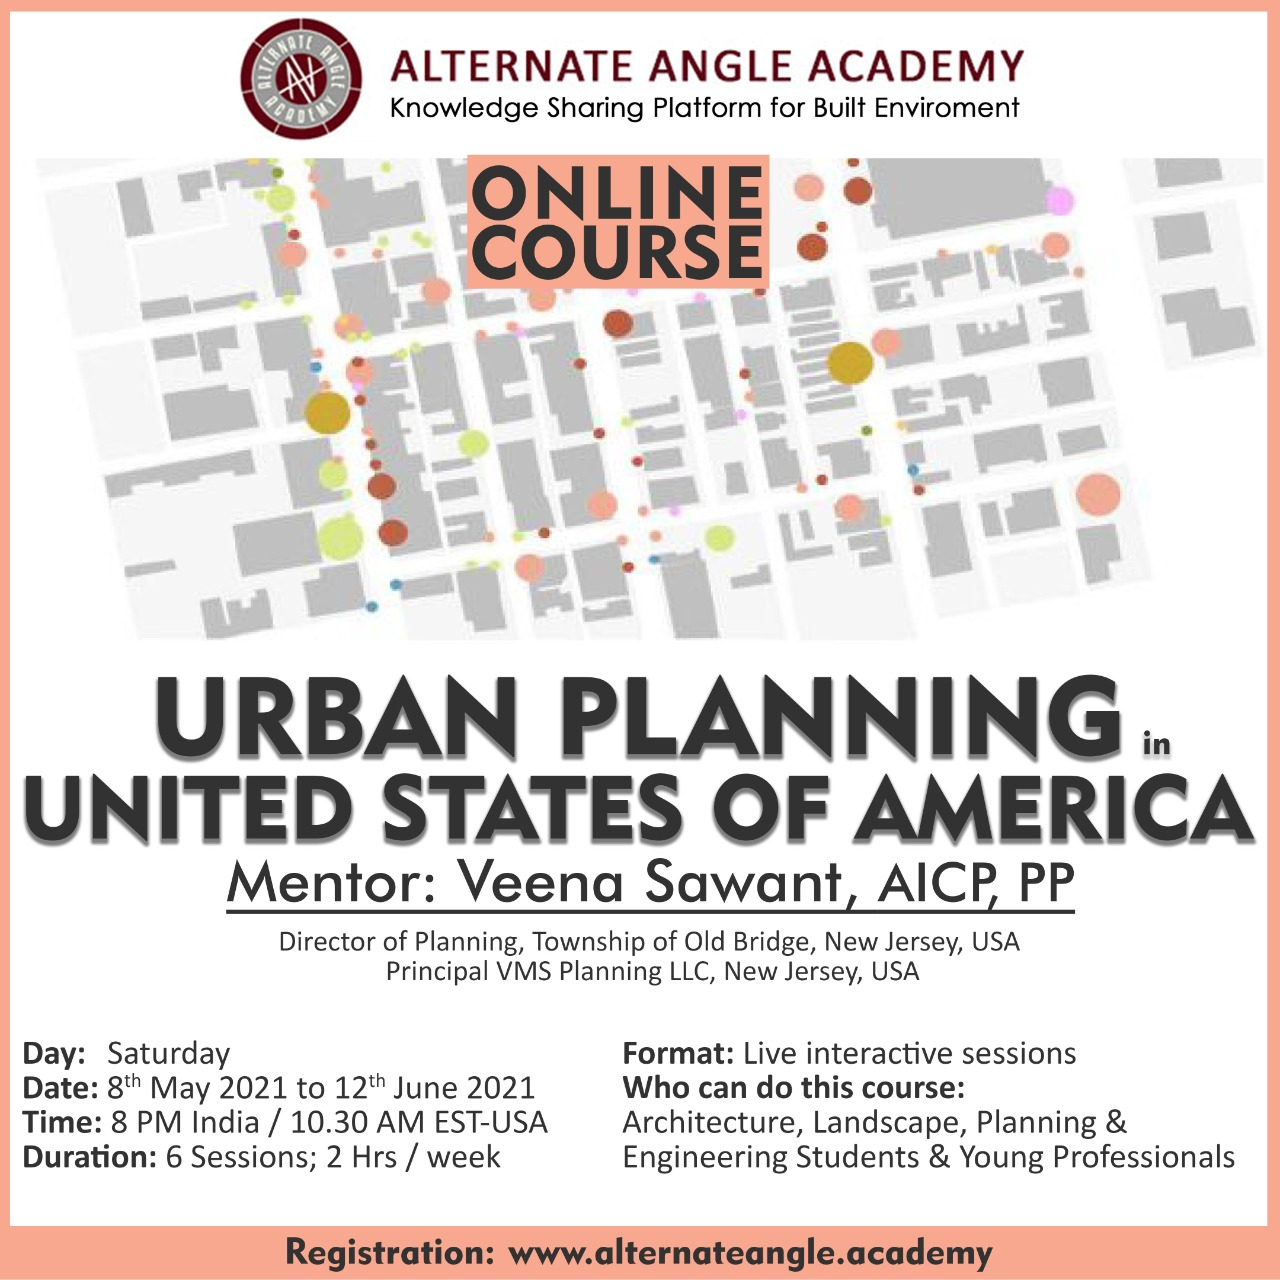 FSP01 - Urban Planning in the United States of America